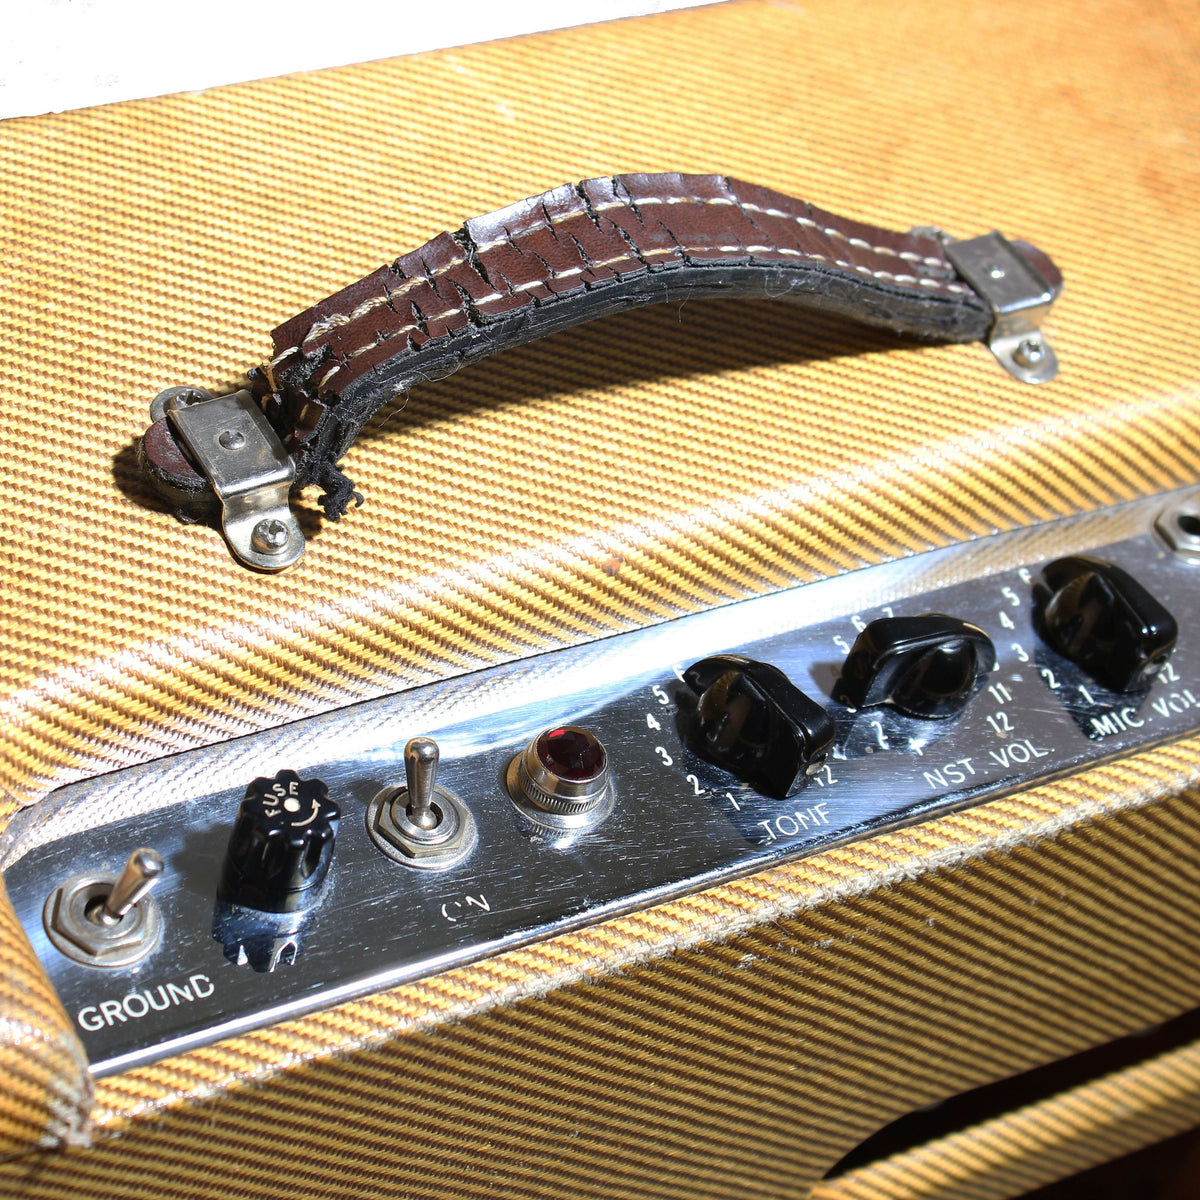 1956 Fender Deluxe Tweed Amp - Garrett Park Guitars  - 8